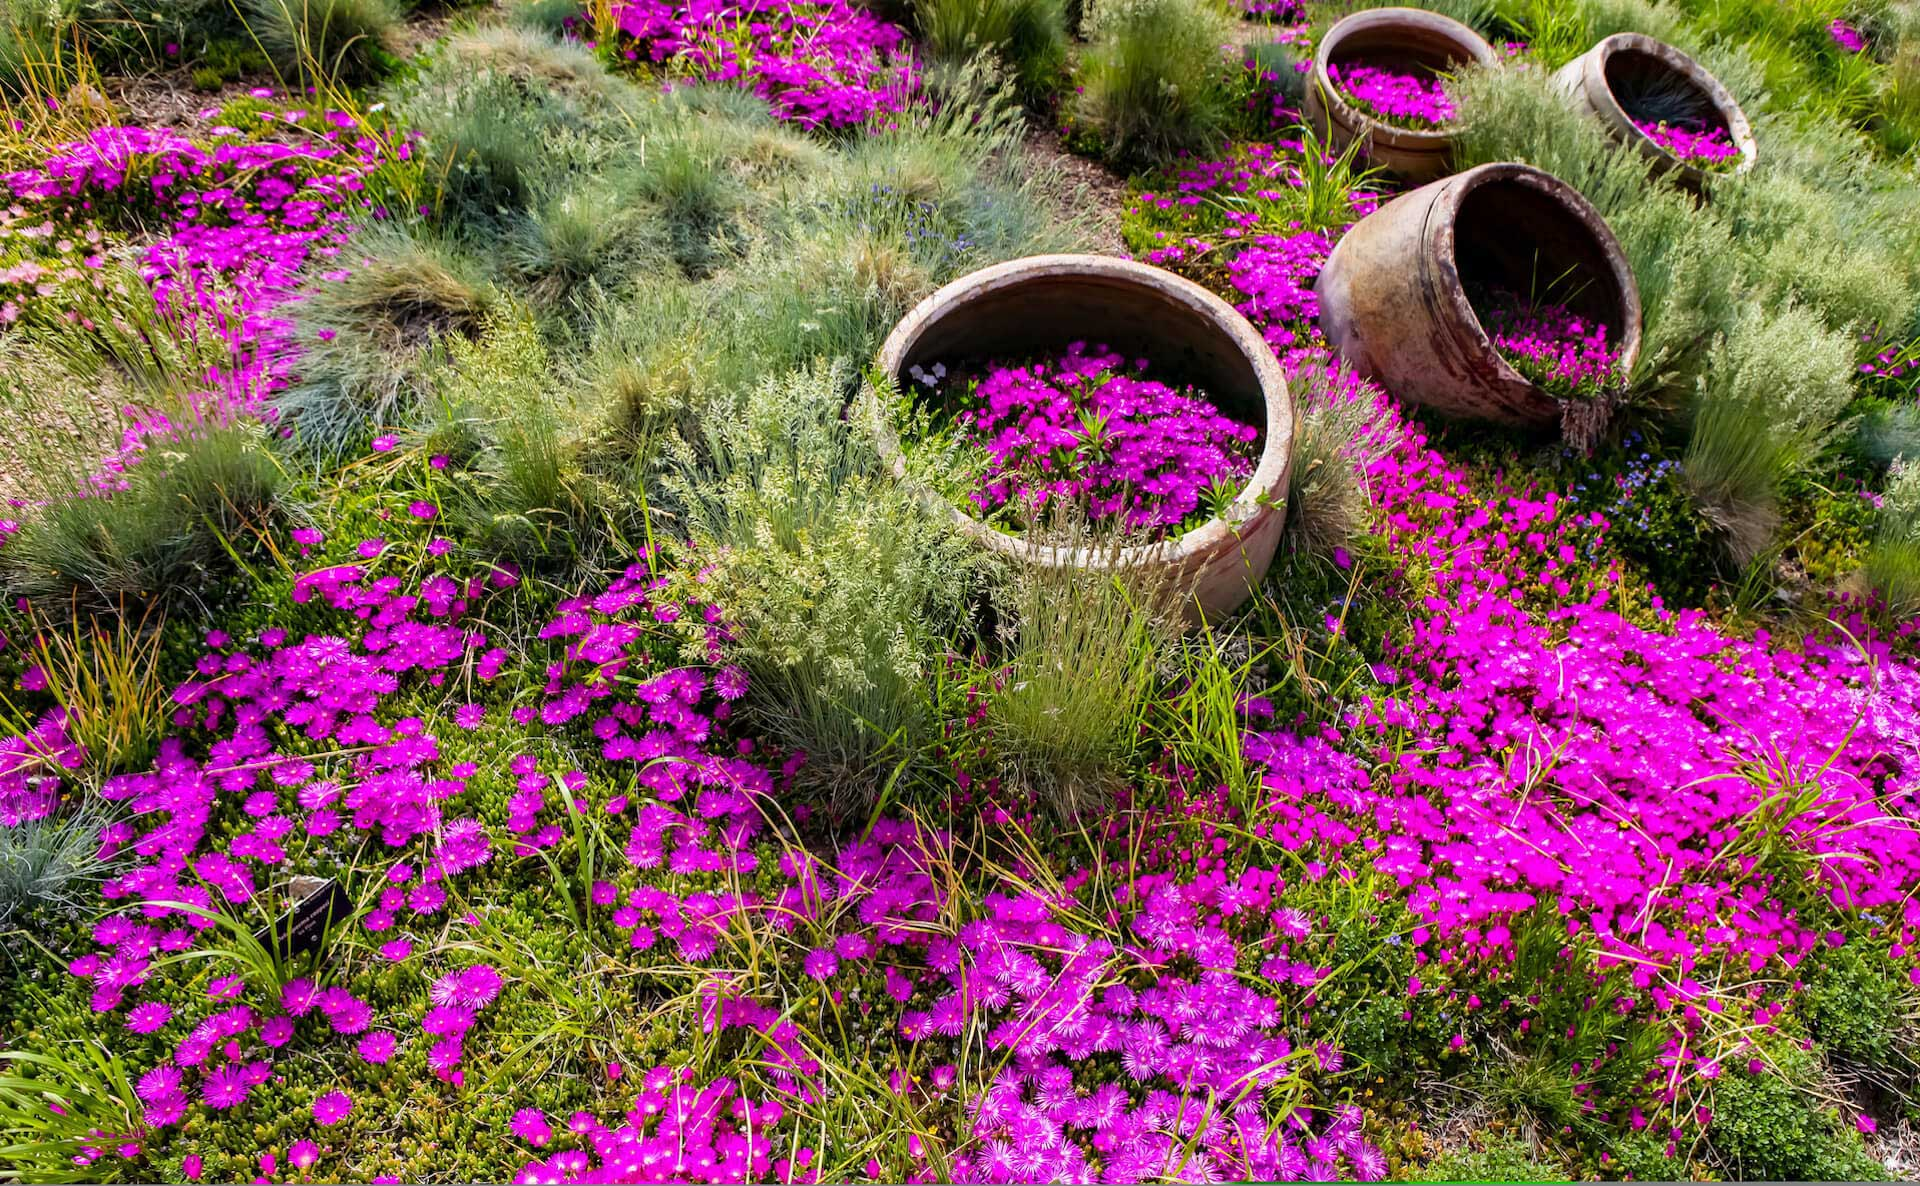 ice plant in the pots